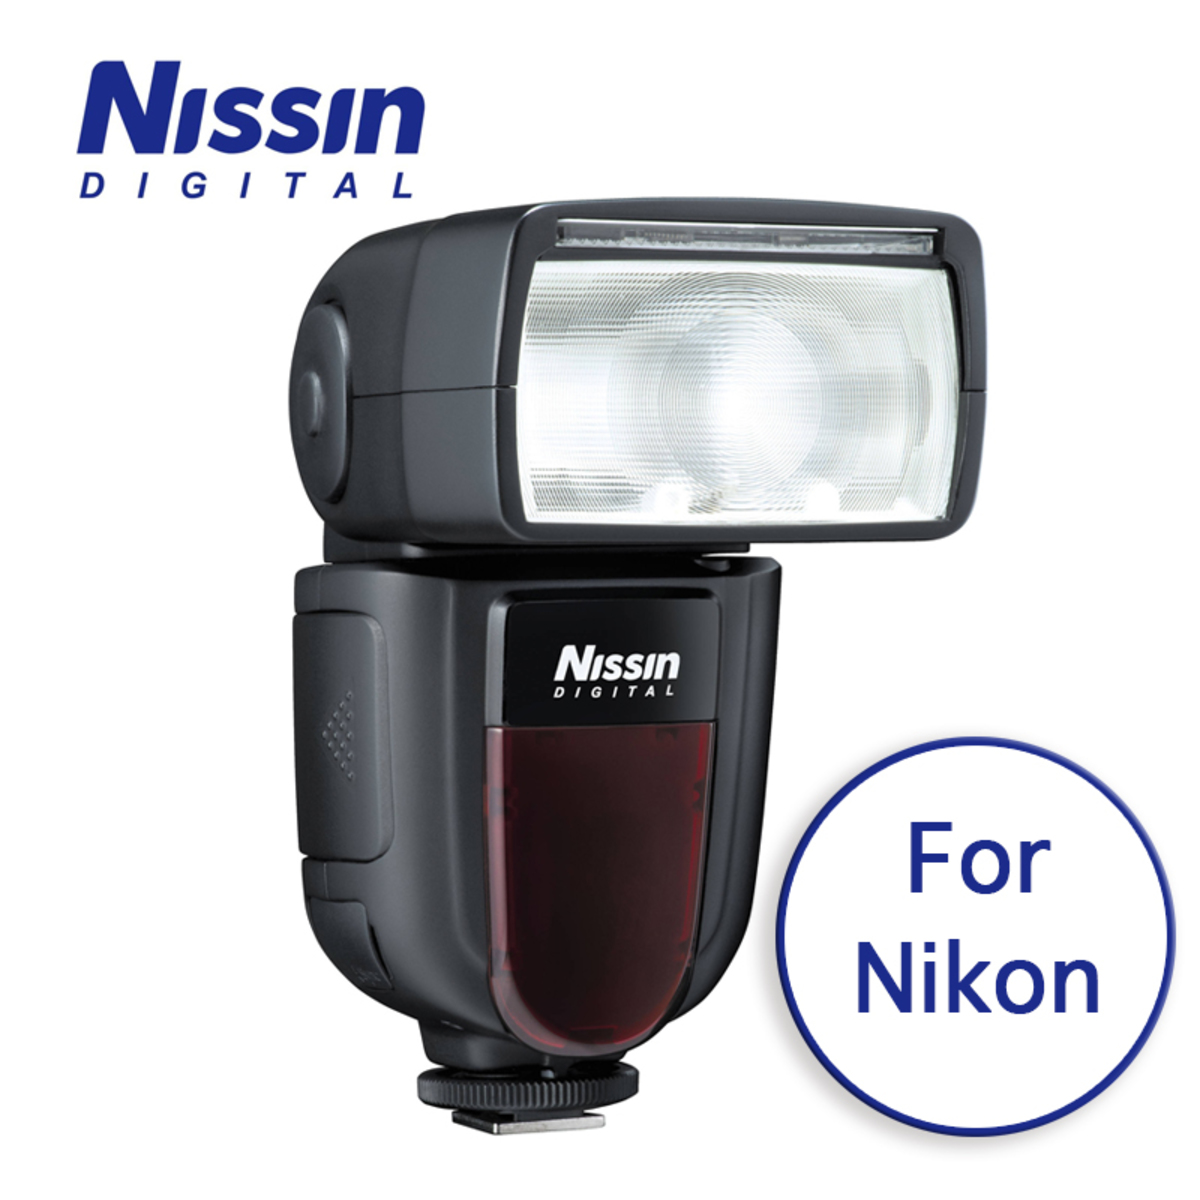 Di700 Flashgun for Nikon